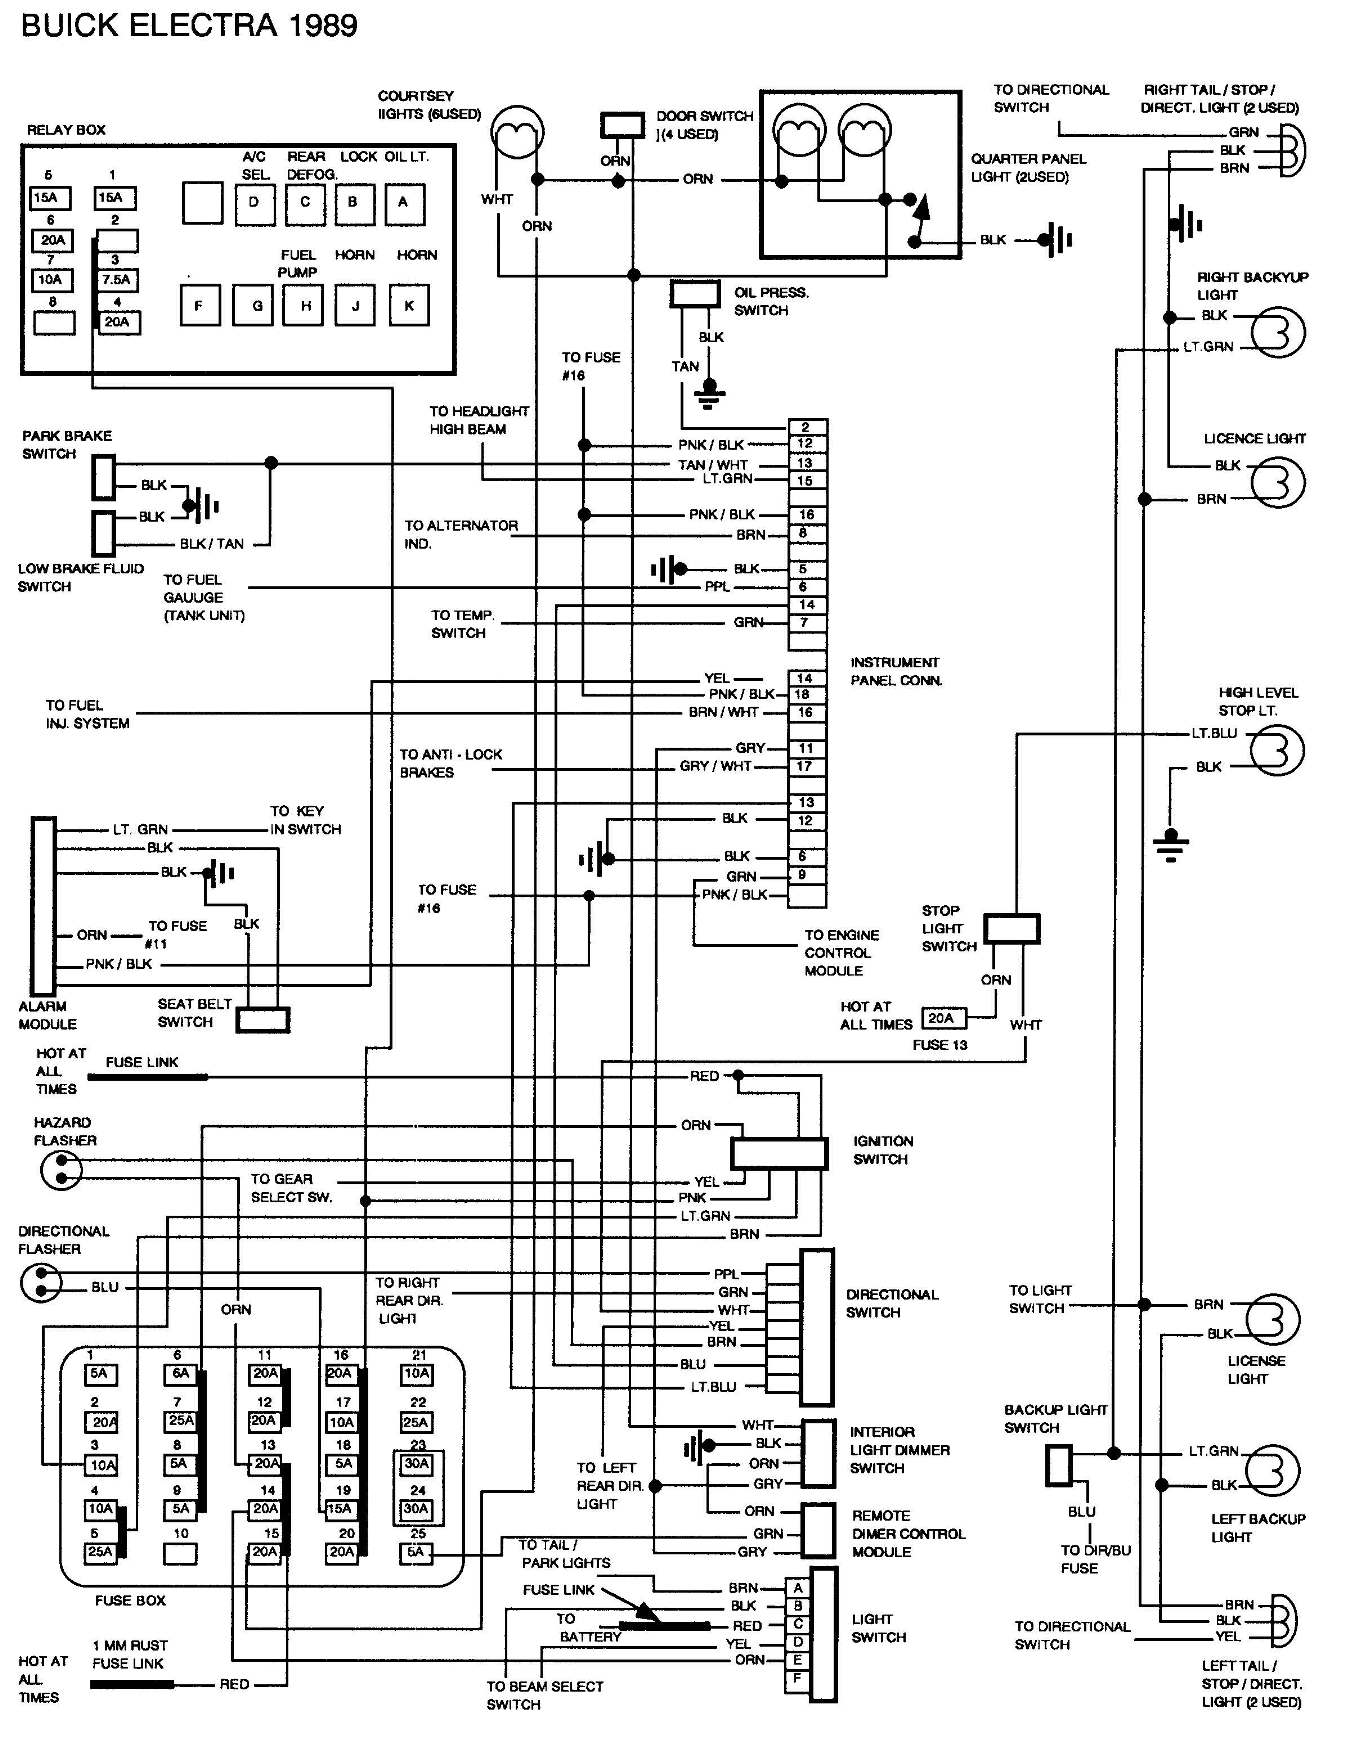 Buick Rendezvous Wiring Diagram For Wheel